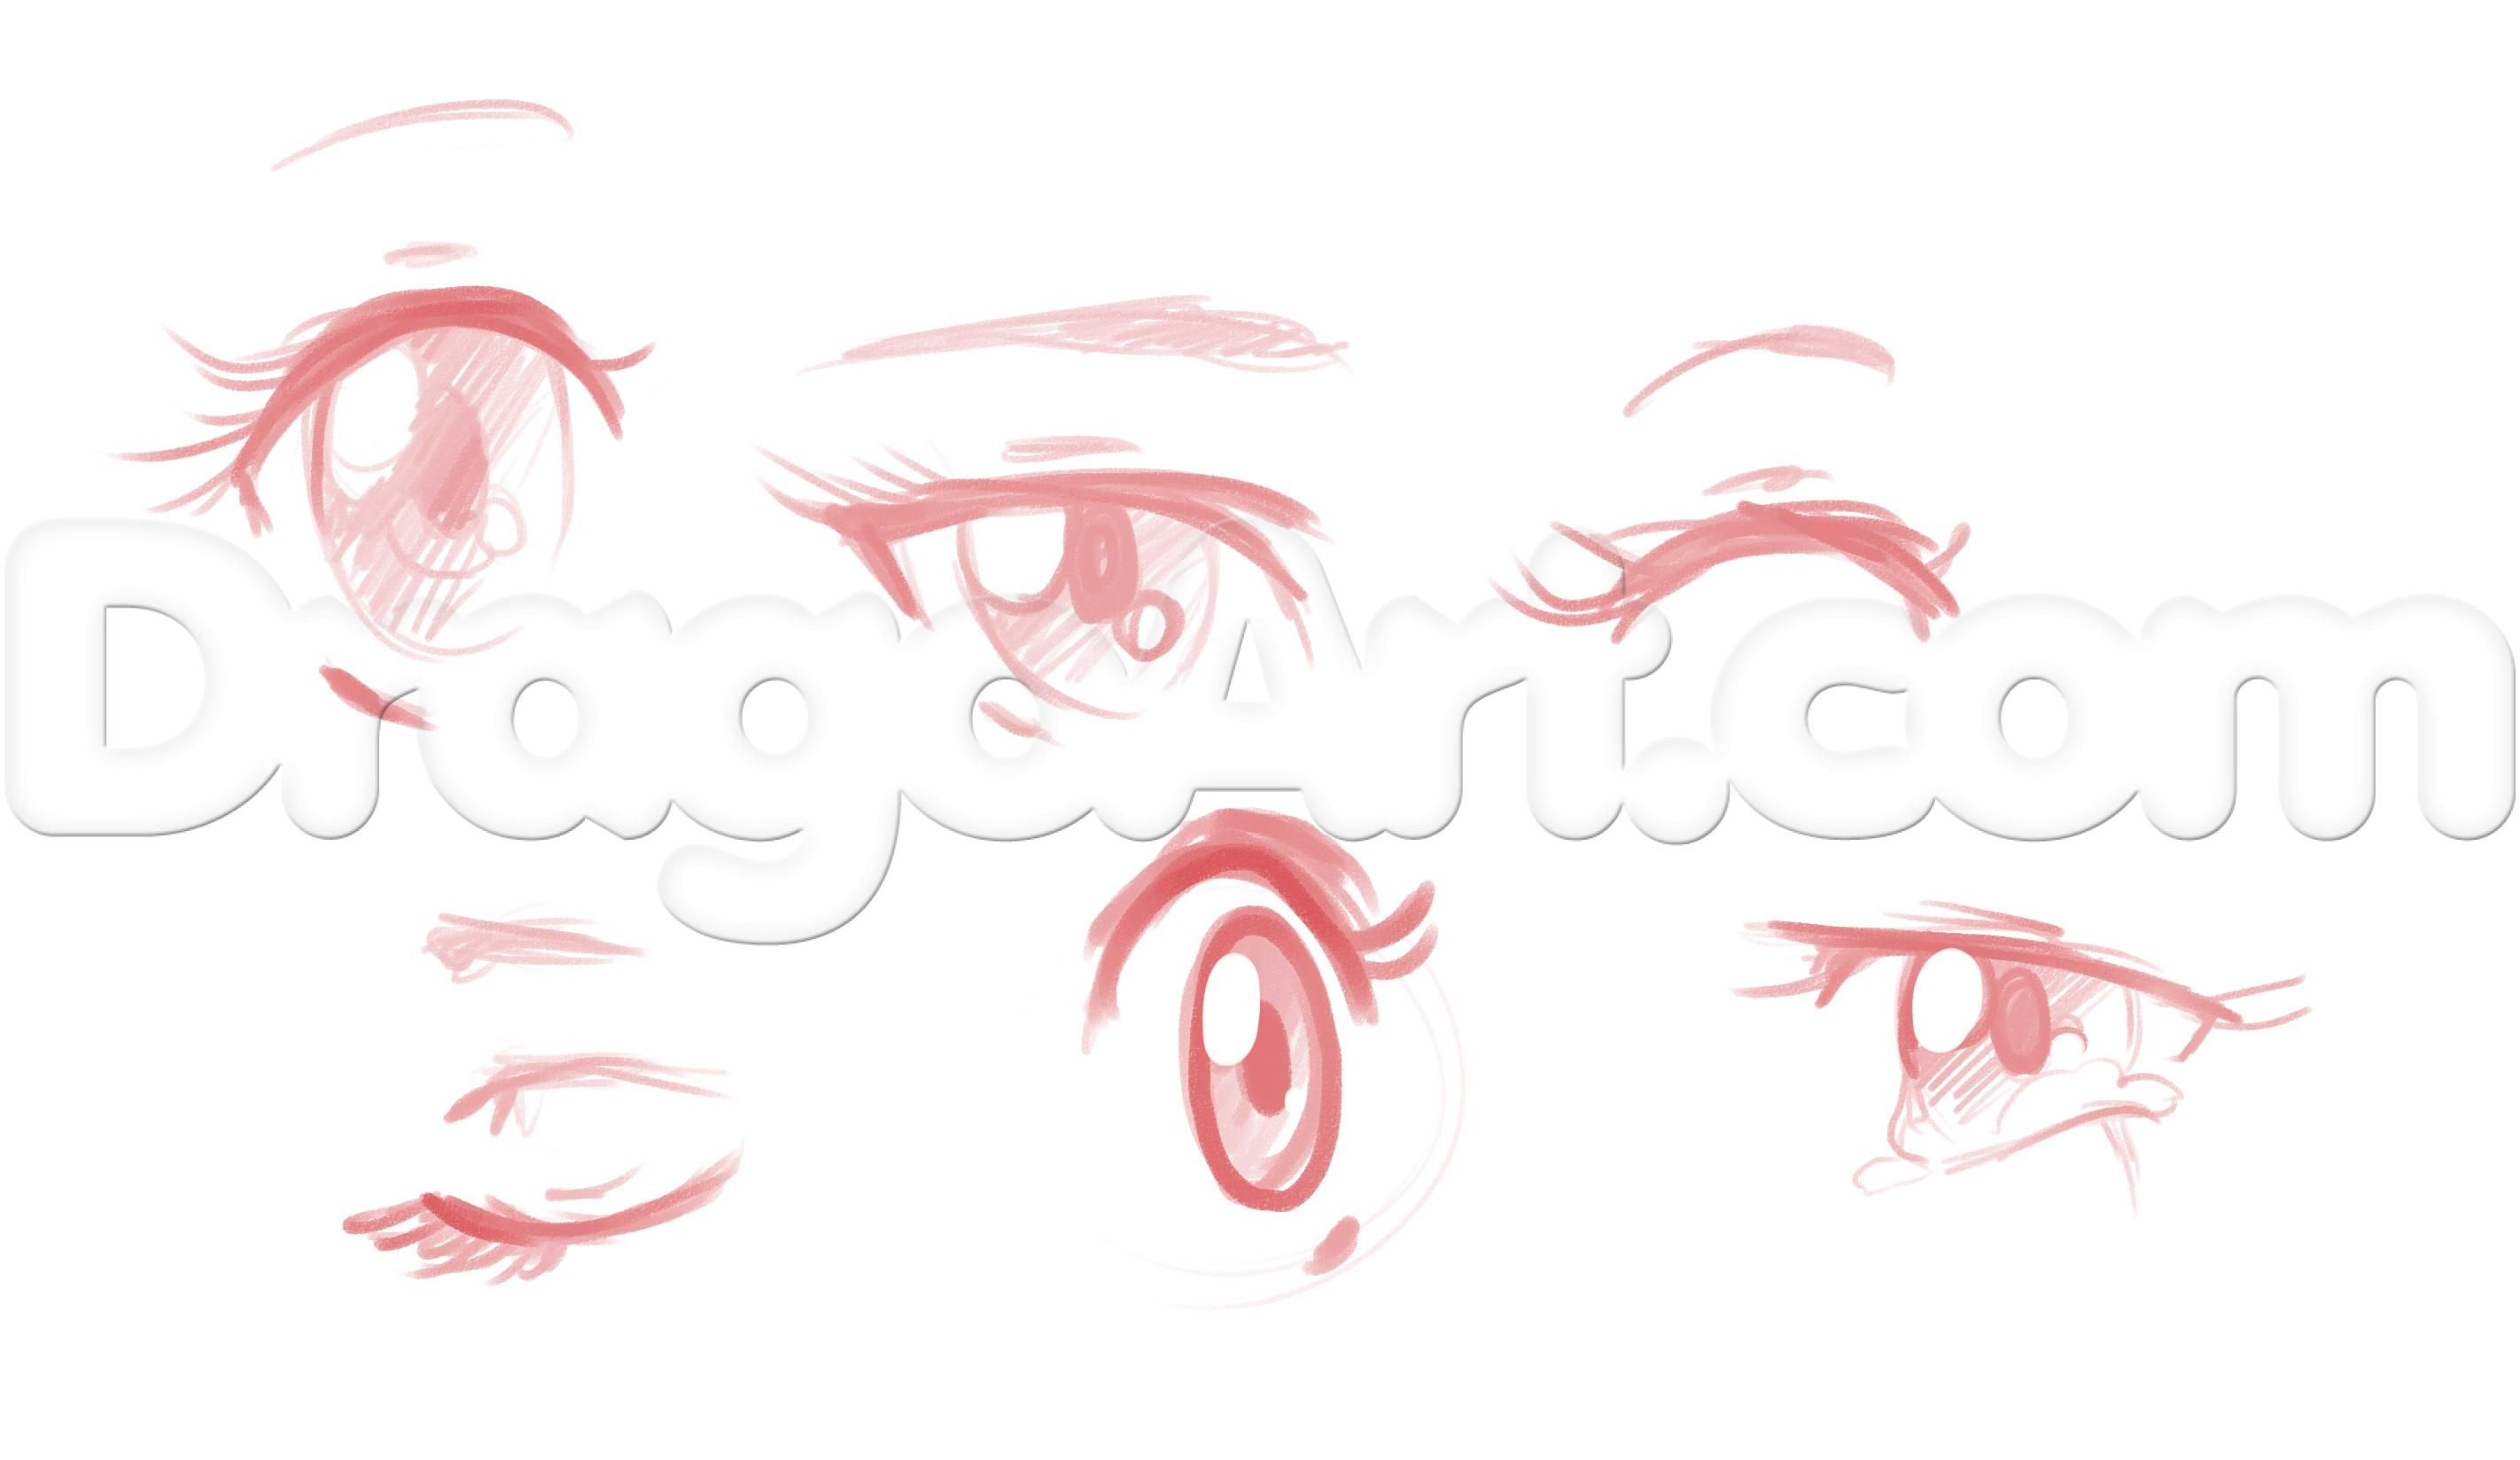 How to draw anime girl faces step by step anime heads anime